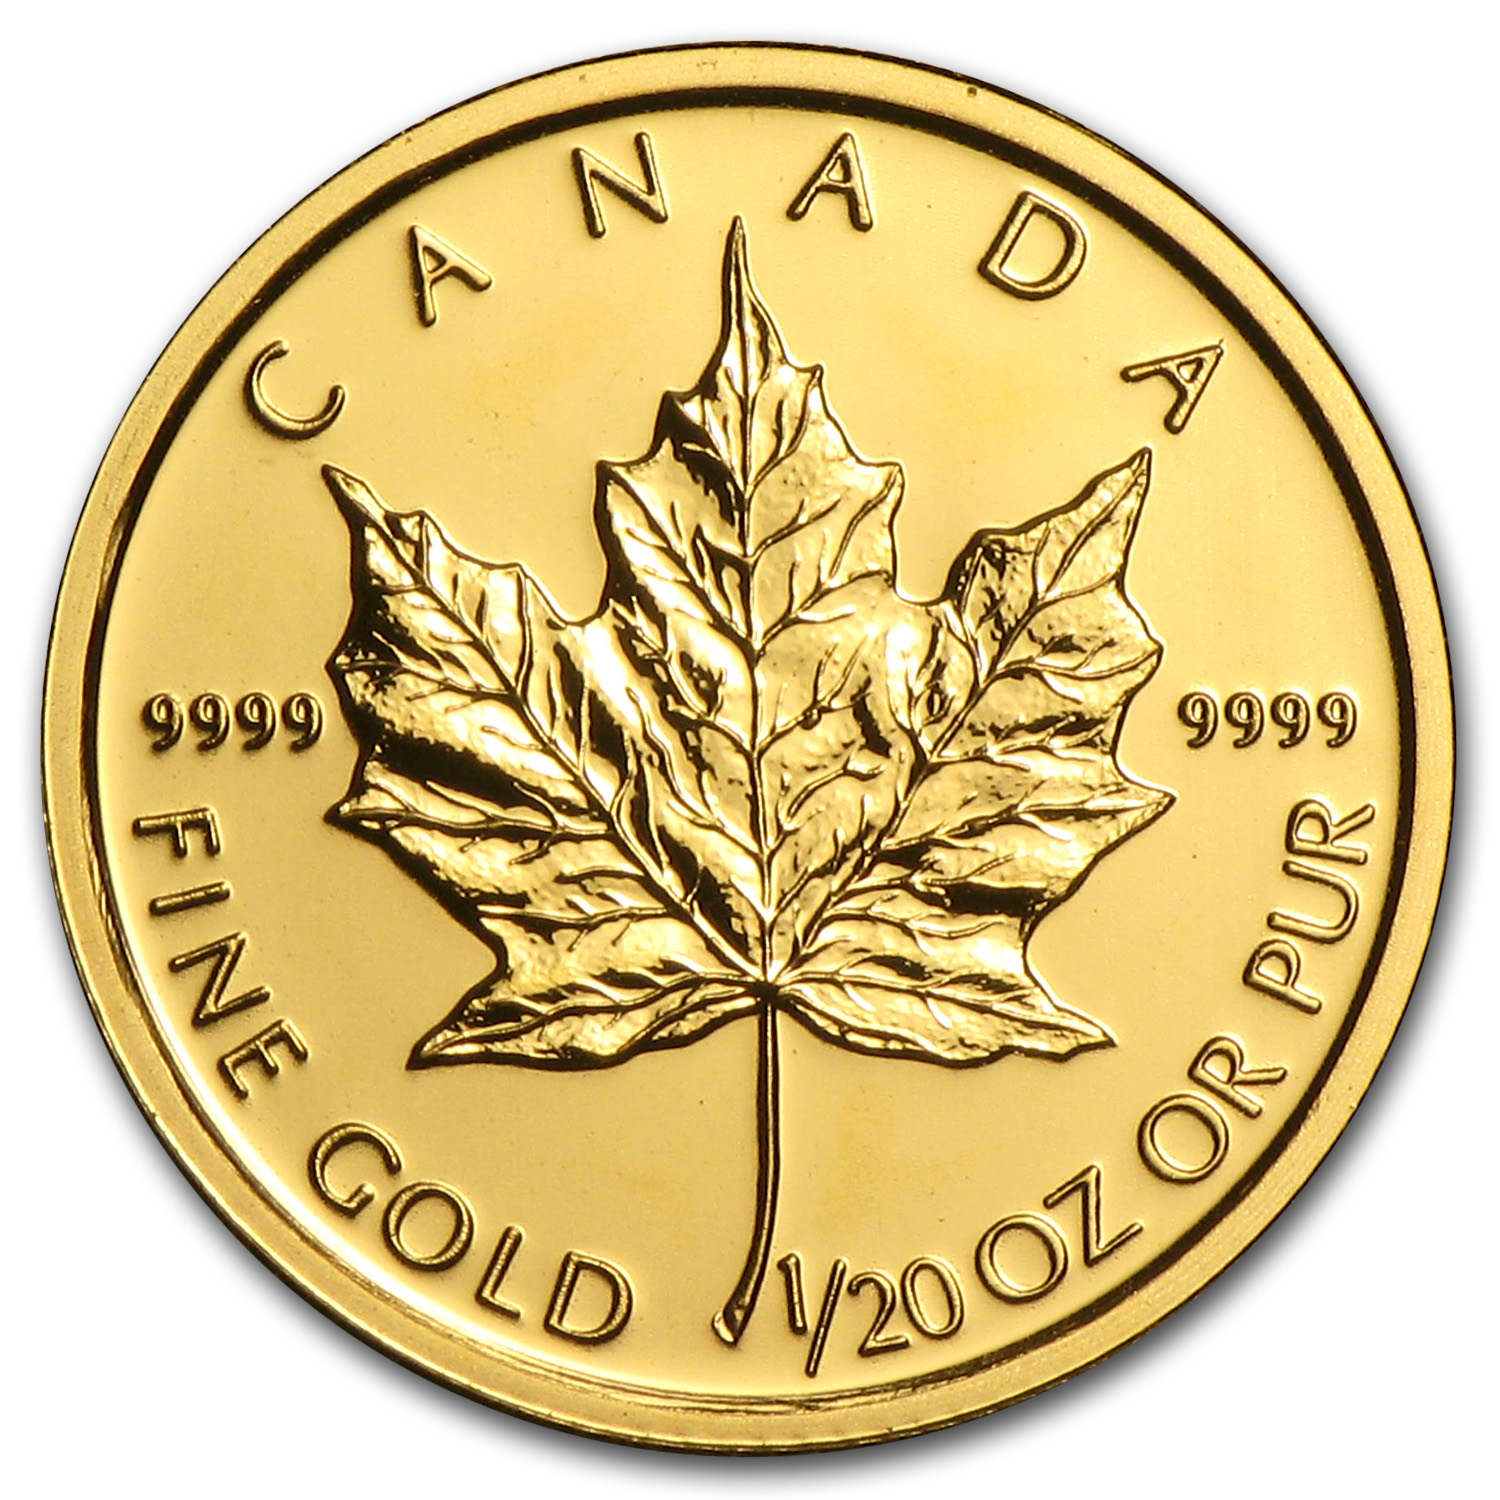 2010 Canada 1/20 oz Gold Maple Leaf BU